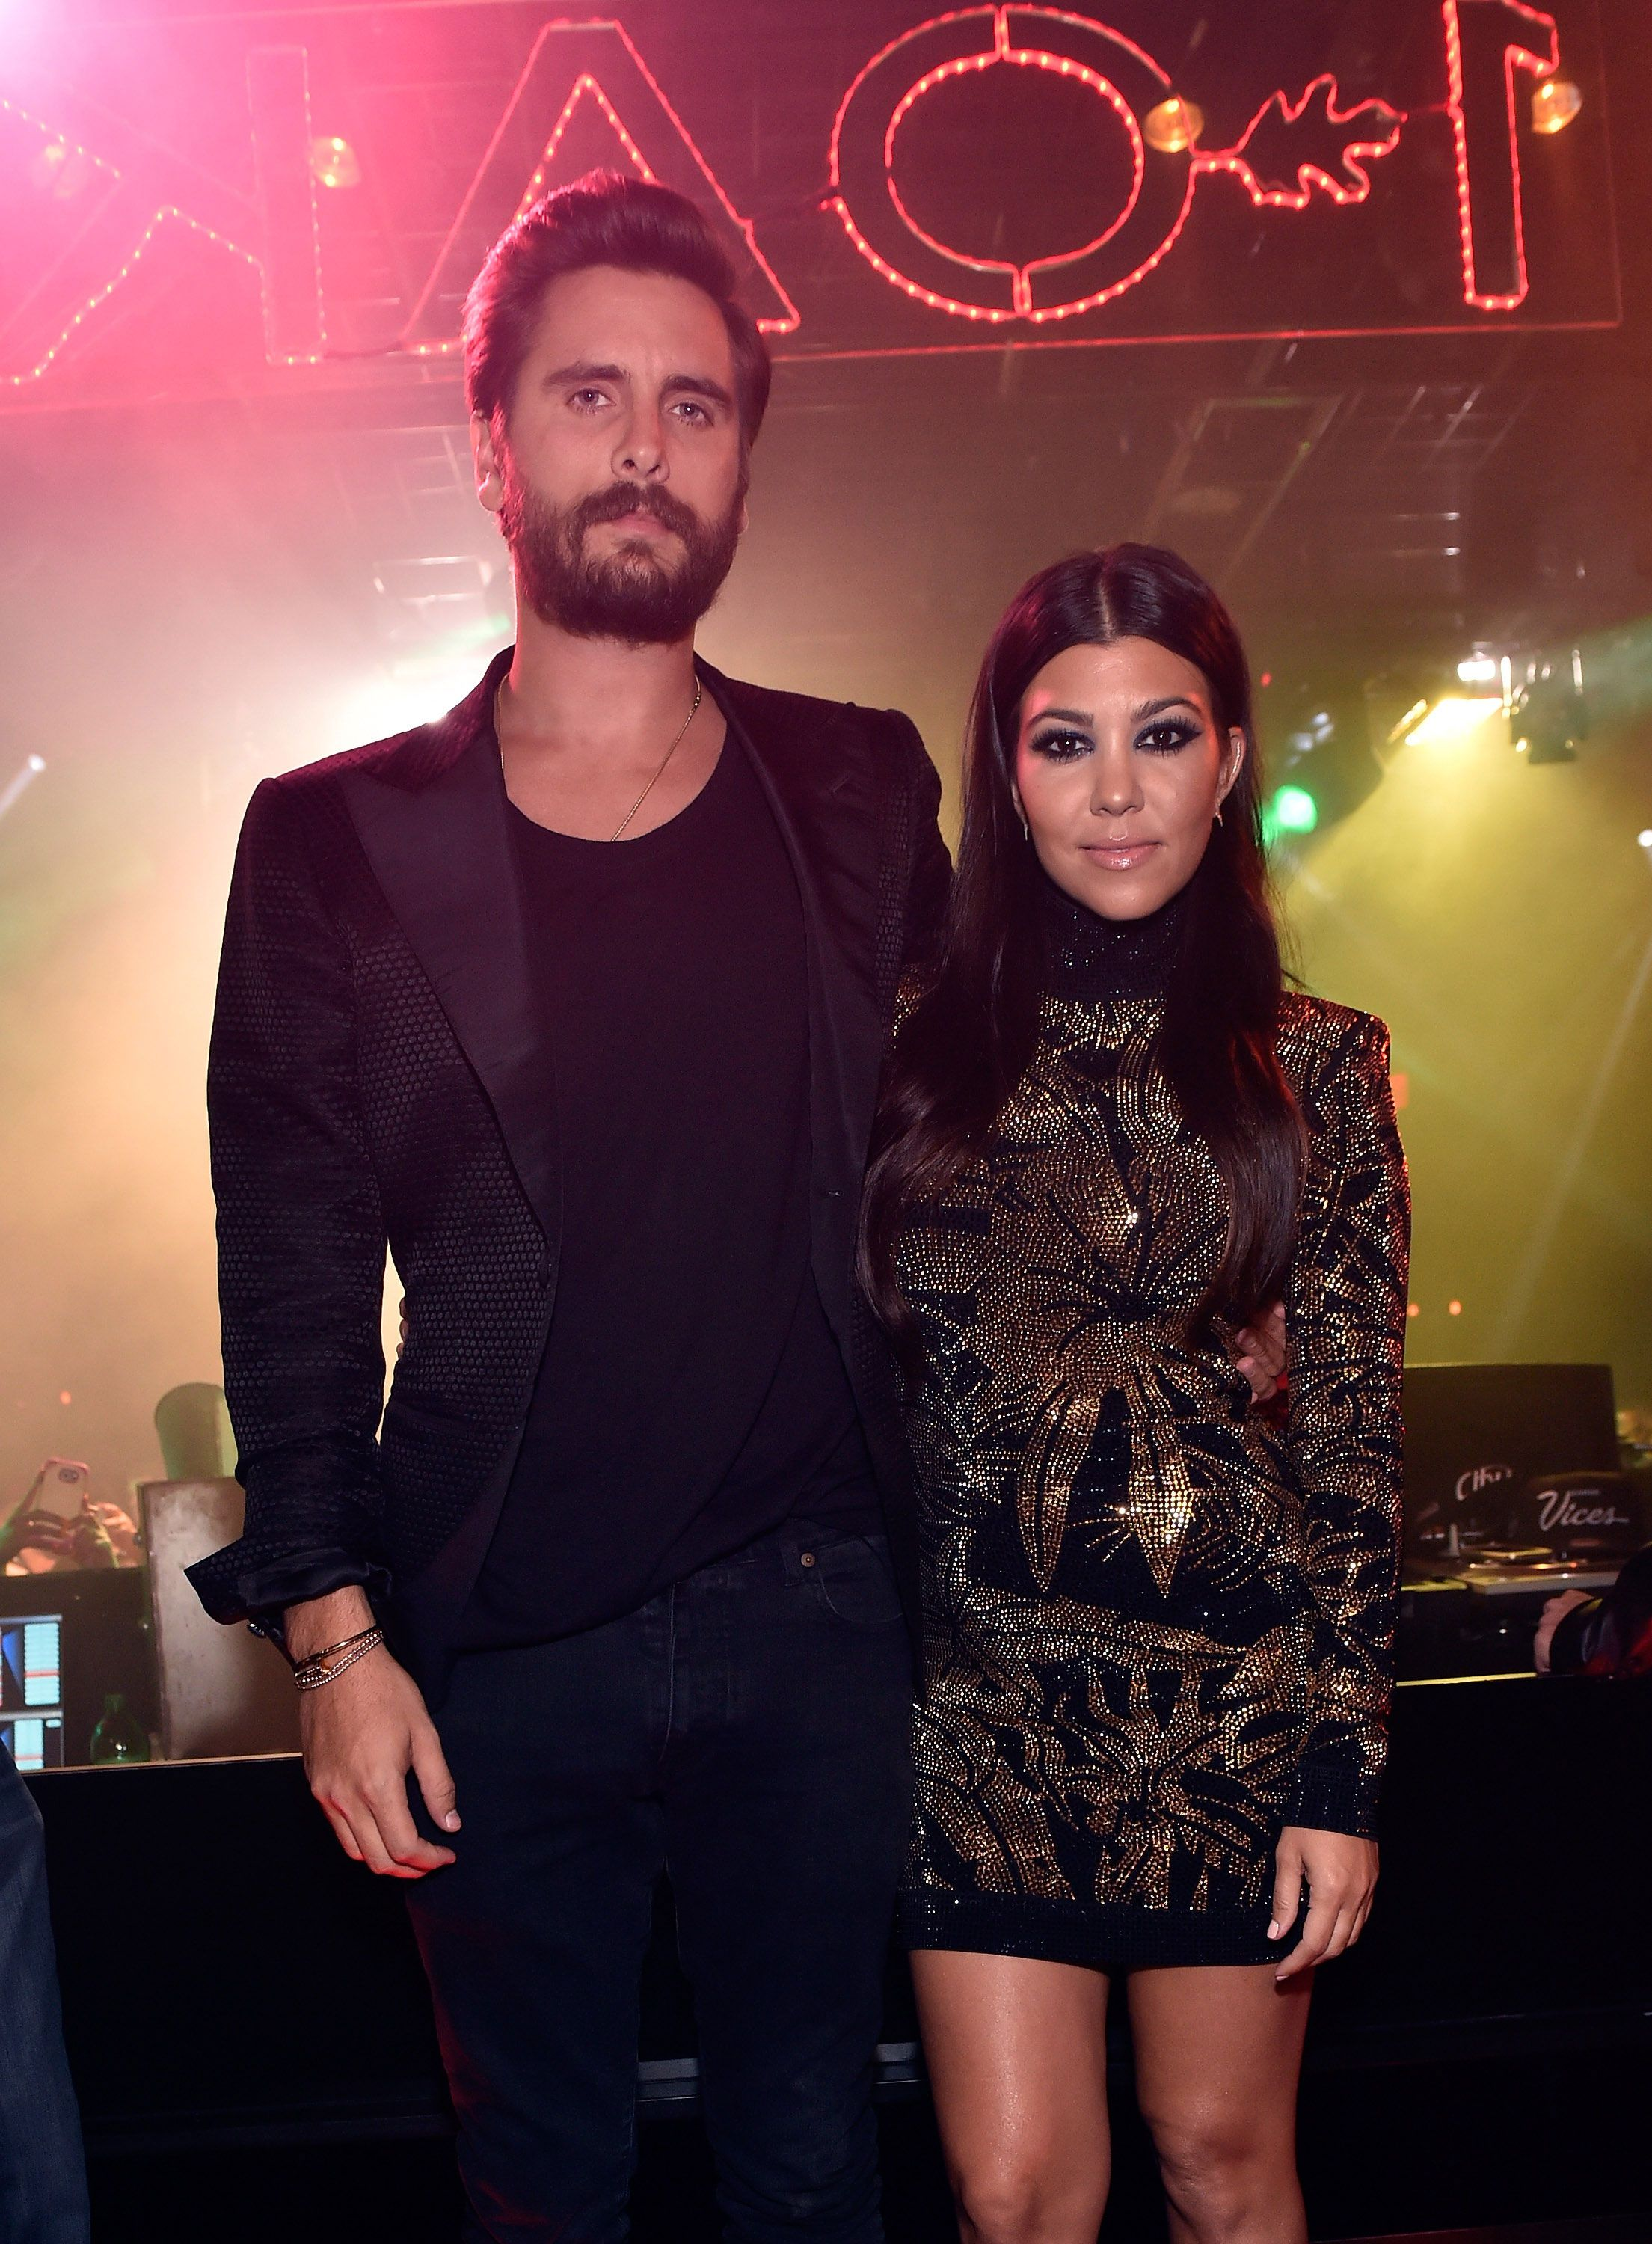 Love Is Real: Kourtney Kardashian and Scott Disick Are Back Together